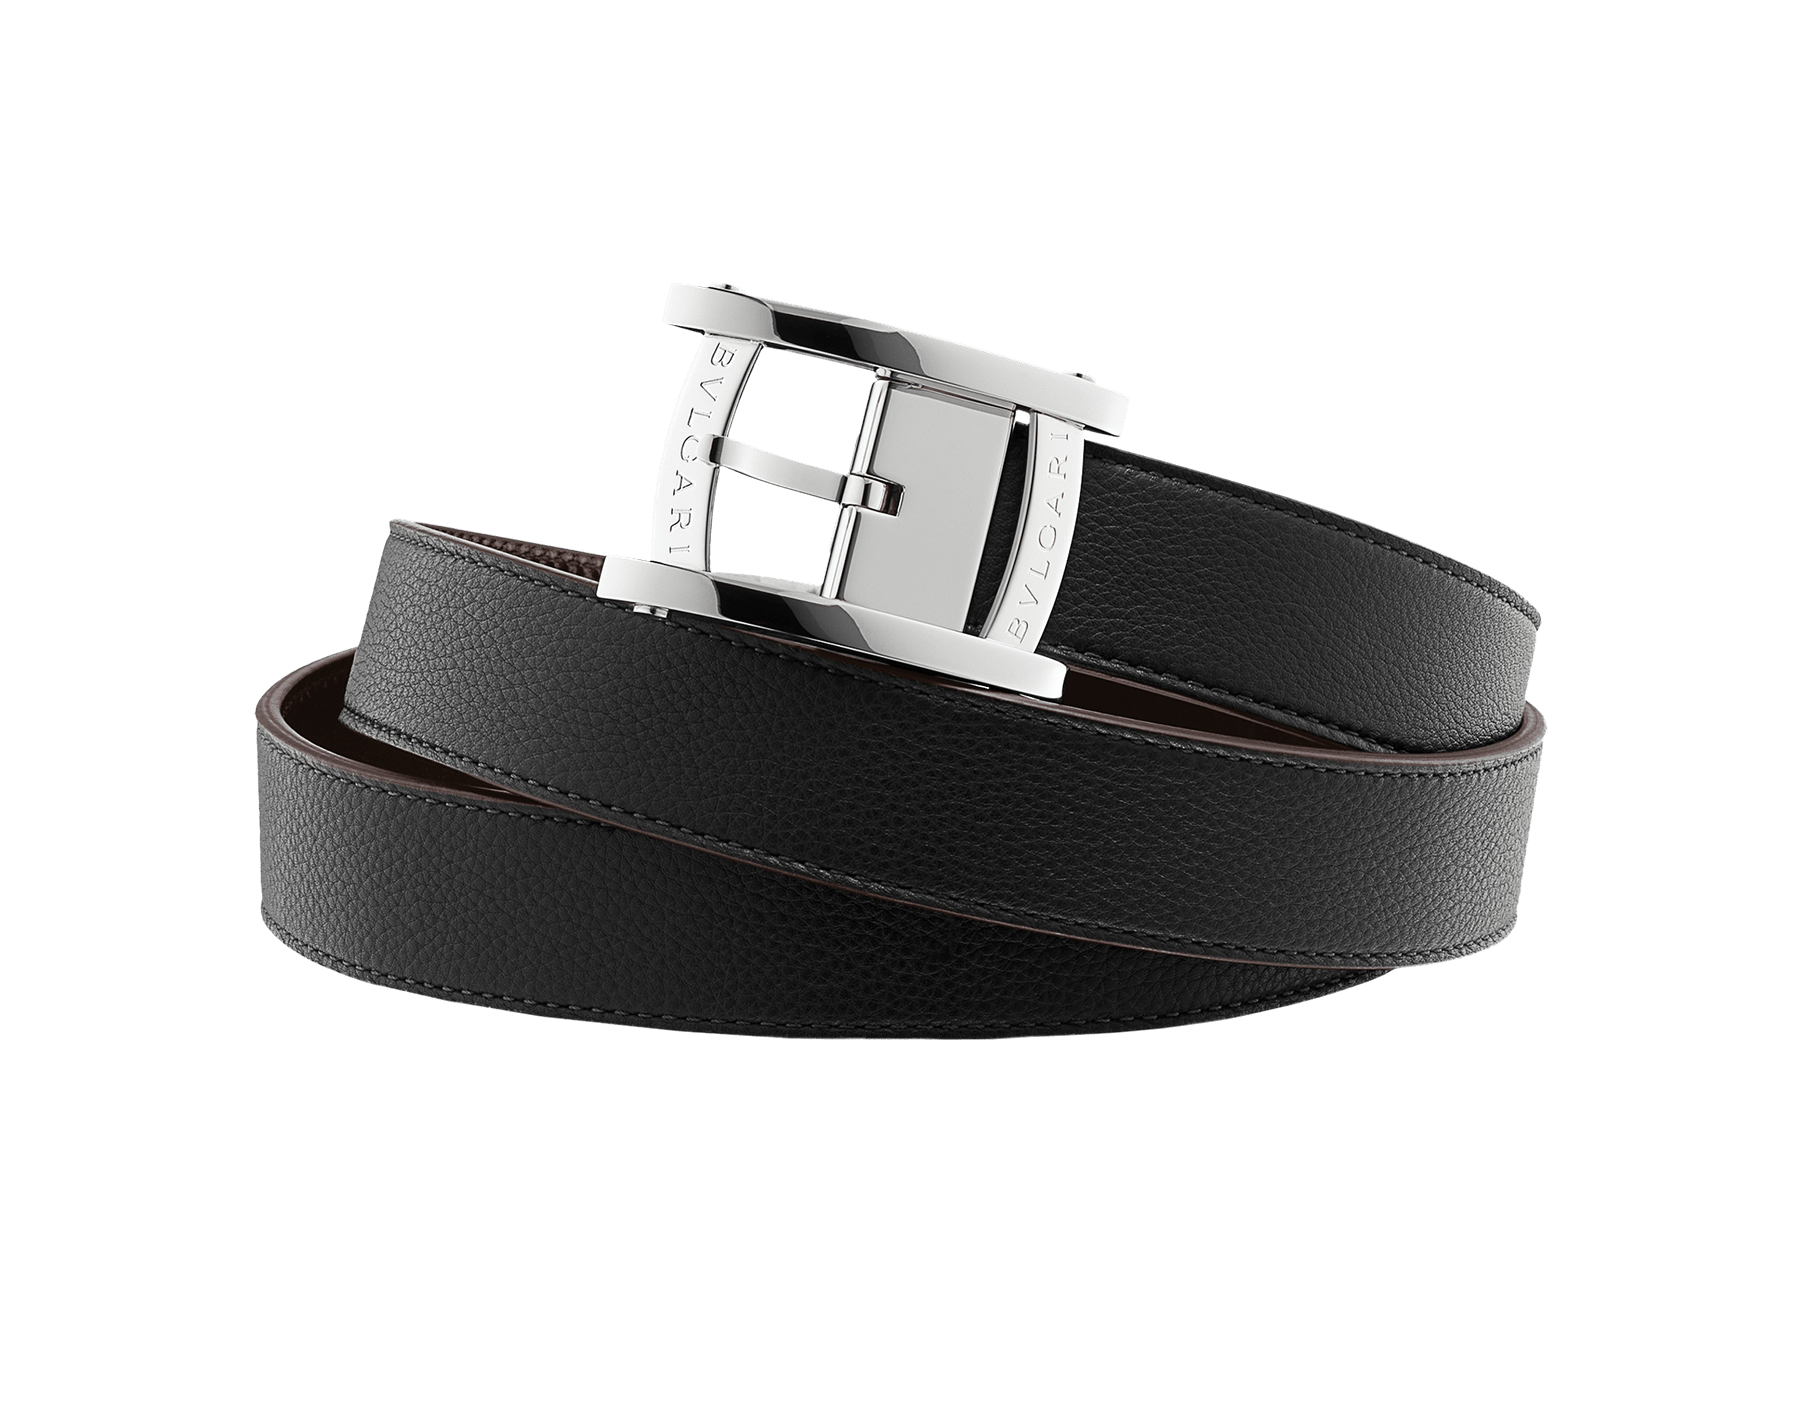 Reversible black full grain calf leather and seal brown Palmellato calf leather belt for men with brass palladium plated hardware. A sports buckle inspired by the Assioma men's watch bezel. ASSIOMA-RV-FGCL image 1